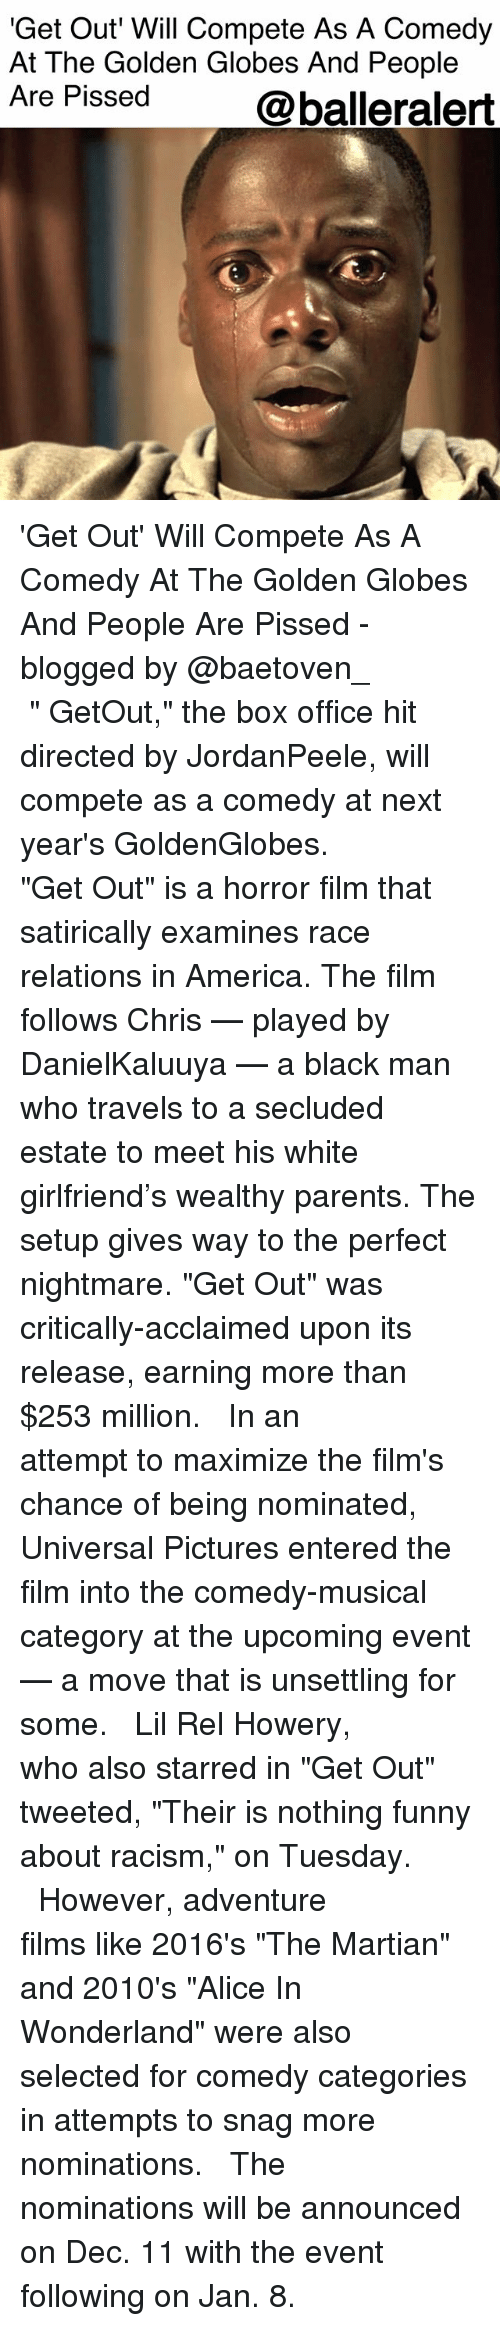 "Golden Globes: 'Get Out Will Compete As A Comedy  At The Golden Globes And People  Are Pissed  @balleralert 'Get Out' Will Compete As A Comedy At The Golden Globes And People Are Pissed - blogged by @baetoven_ ⠀⠀⠀⠀⠀⠀⠀ ⠀⠀⠀⠀⠀⠀⠀ "" GetOut,"" the box office hit directed by JordanPeele, will compete as a comedy at next year's GoldenGlobes. ⠀⠀⠀⠀⠀⠀⠀ ⠀⠀⠀⠀⠀⠀⠀ ""Get Out"" is a horror film that satirically examines race relations in America. The film follows Chris — played by DanielKaluuya — a black man who travels to a secluded estate to meet his white girlfriend's wealthy parents. The setup gives way to the perfect nightmare. ""Get Out"" was critically-acclaimed upon its release, earning more than $253 million. ⠀⠀⠀⠀⠀⠀⠀ ⠀⠀⠀⠀⠀⠀⠀ In an attempt to maximize the film's chance of being nominated, Universal Pictures entered the film into the comedy-musical category at the upcoming event — a move that is unsettling for some. ⠀⠀⠀⠀⠀⠀⠀ ⠀⠀⠀⠀⠀⠀⠀ Lil Rel Howery, who also starred in ""Get Out"" tweeted, ""Their is nothing funny about racism,"" on Tuesday. ⠀⠀⠀⠀⠀⠀⠀ ⠀⠀⠀⠀⠀⠀⠀ However, adventure films like 2016's ""The Martian"" and 2010's ""Alice In Wonderland"" were also selected for comedy categories in attempts to snag more nominations. ⠀⠀⠀⠀⠀⠀⠀ ⠀⠀⠀⠀⠀⠀⠀ The nominations will be announced on Dec. 11 with the event following on Jan. 8."